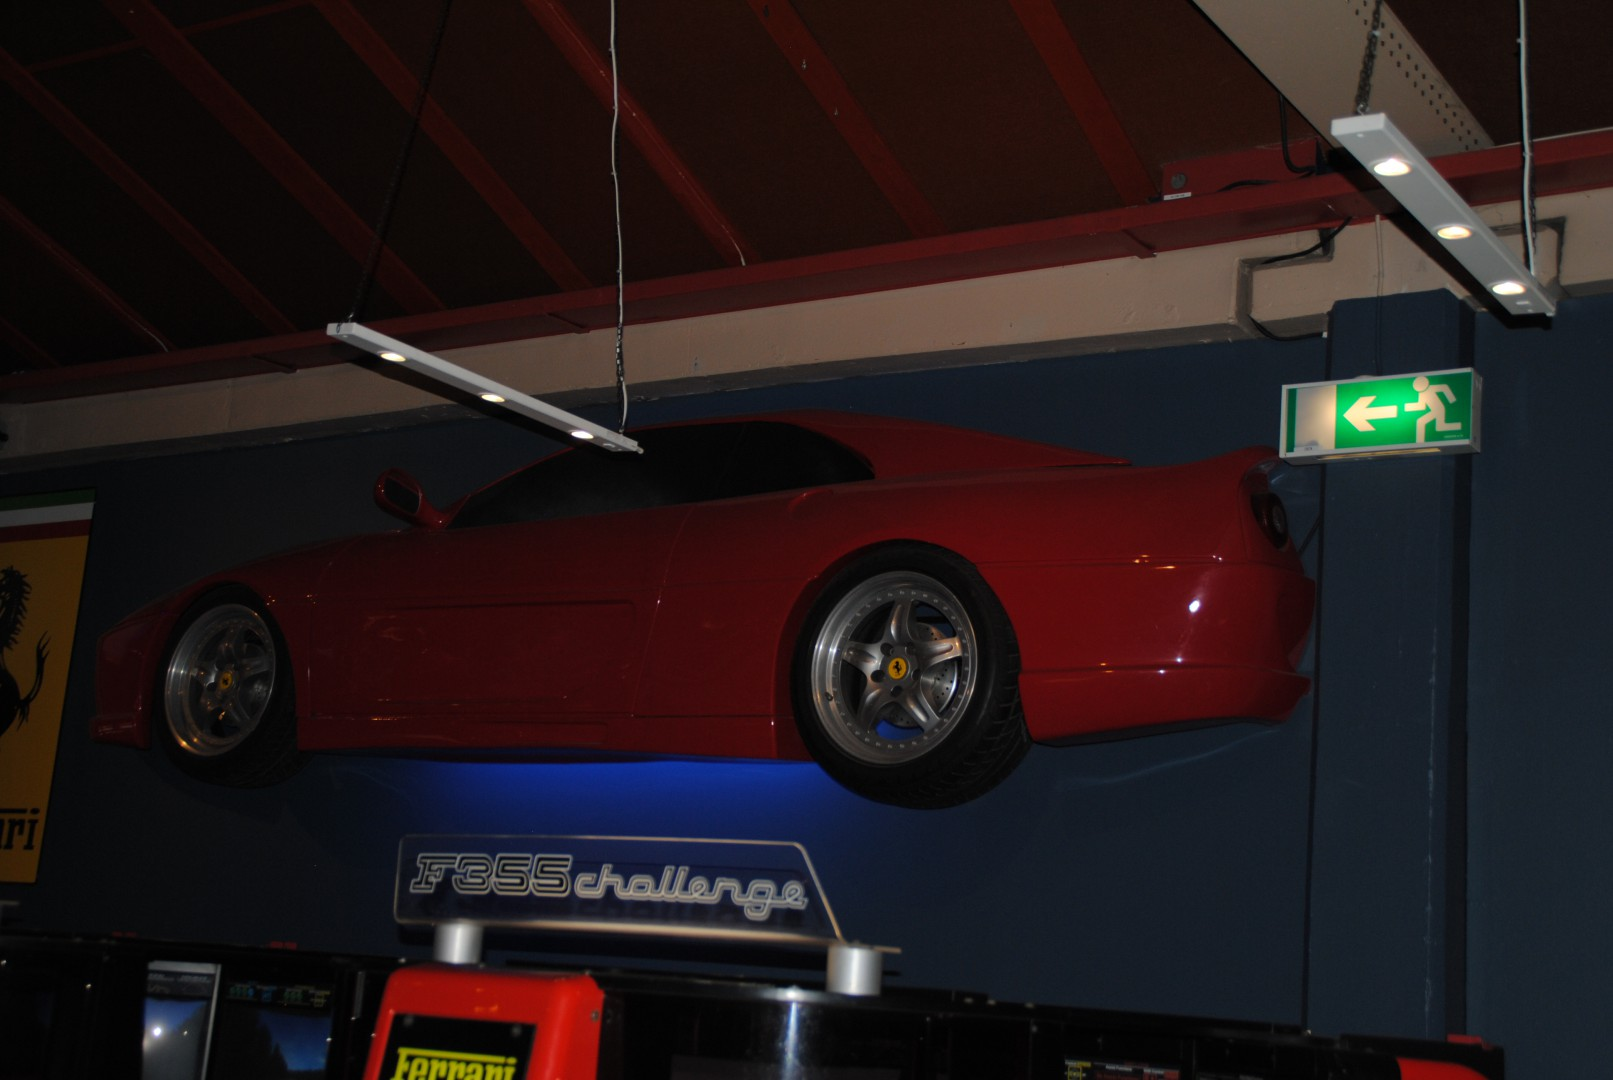 F355 Challenge Wall Thingy :D